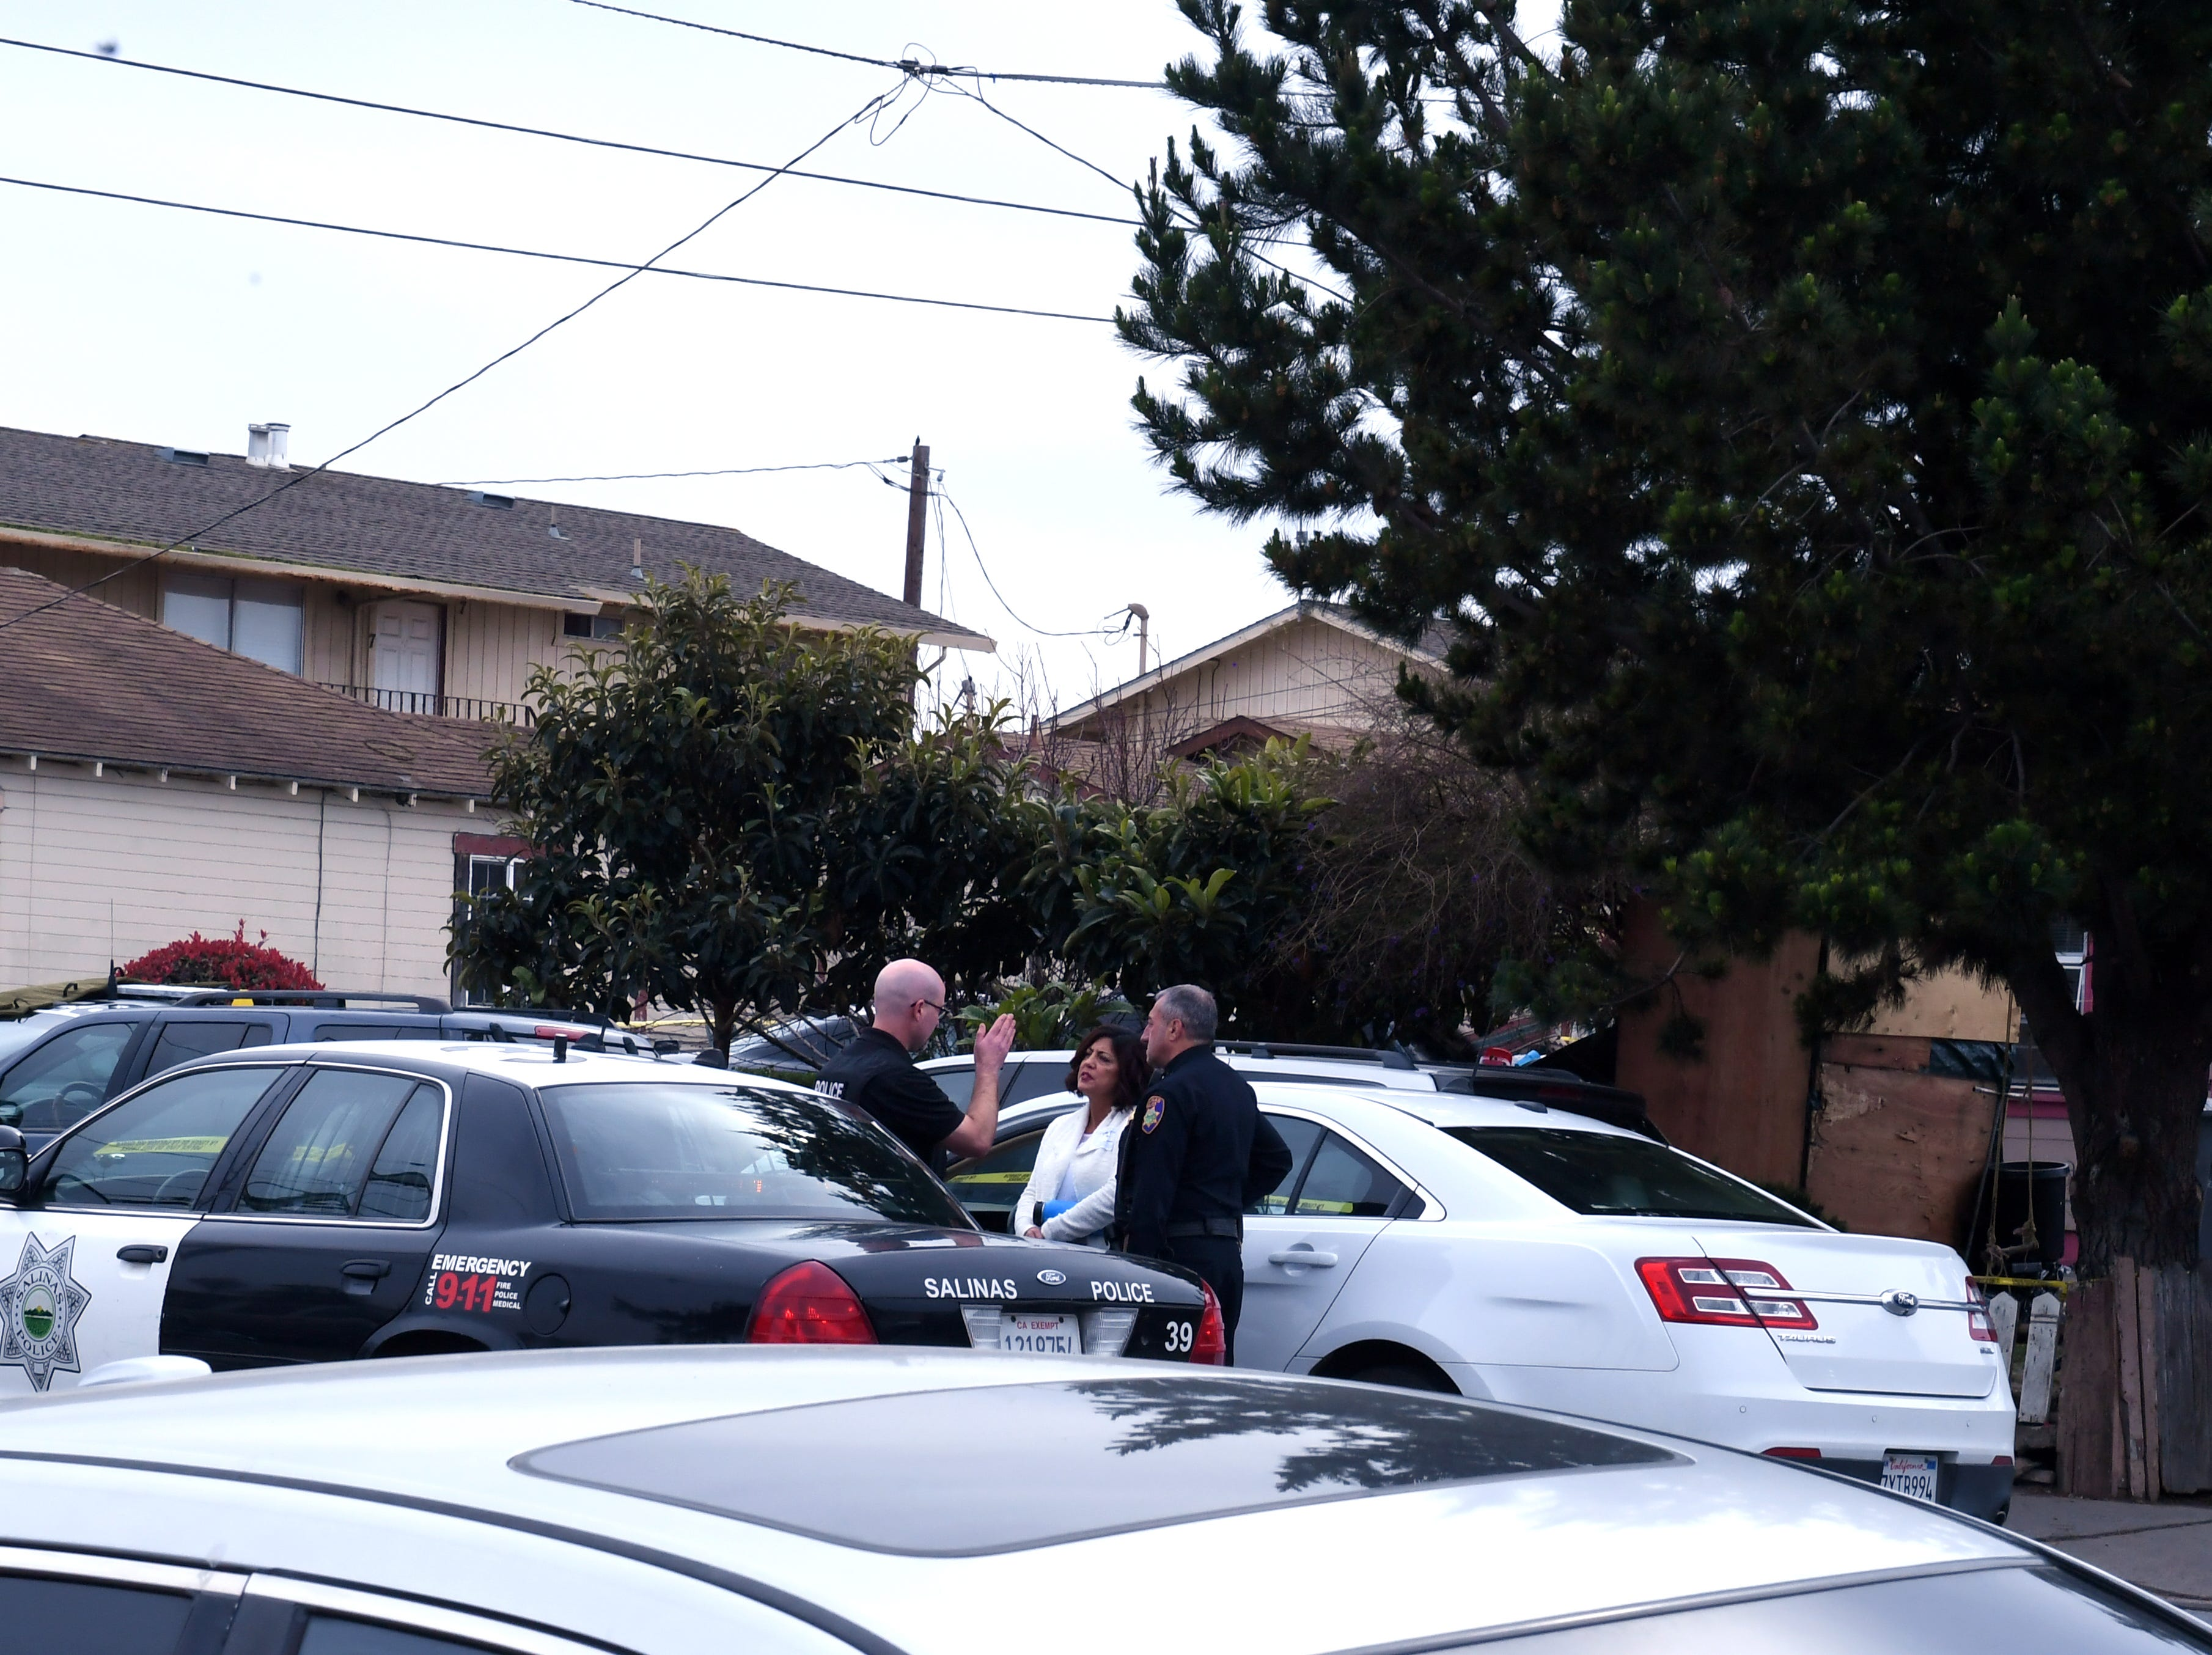 Salinas police and members of the Monterey County District Attorney's Office respond to the scene of an officer-involved shooting Friday.